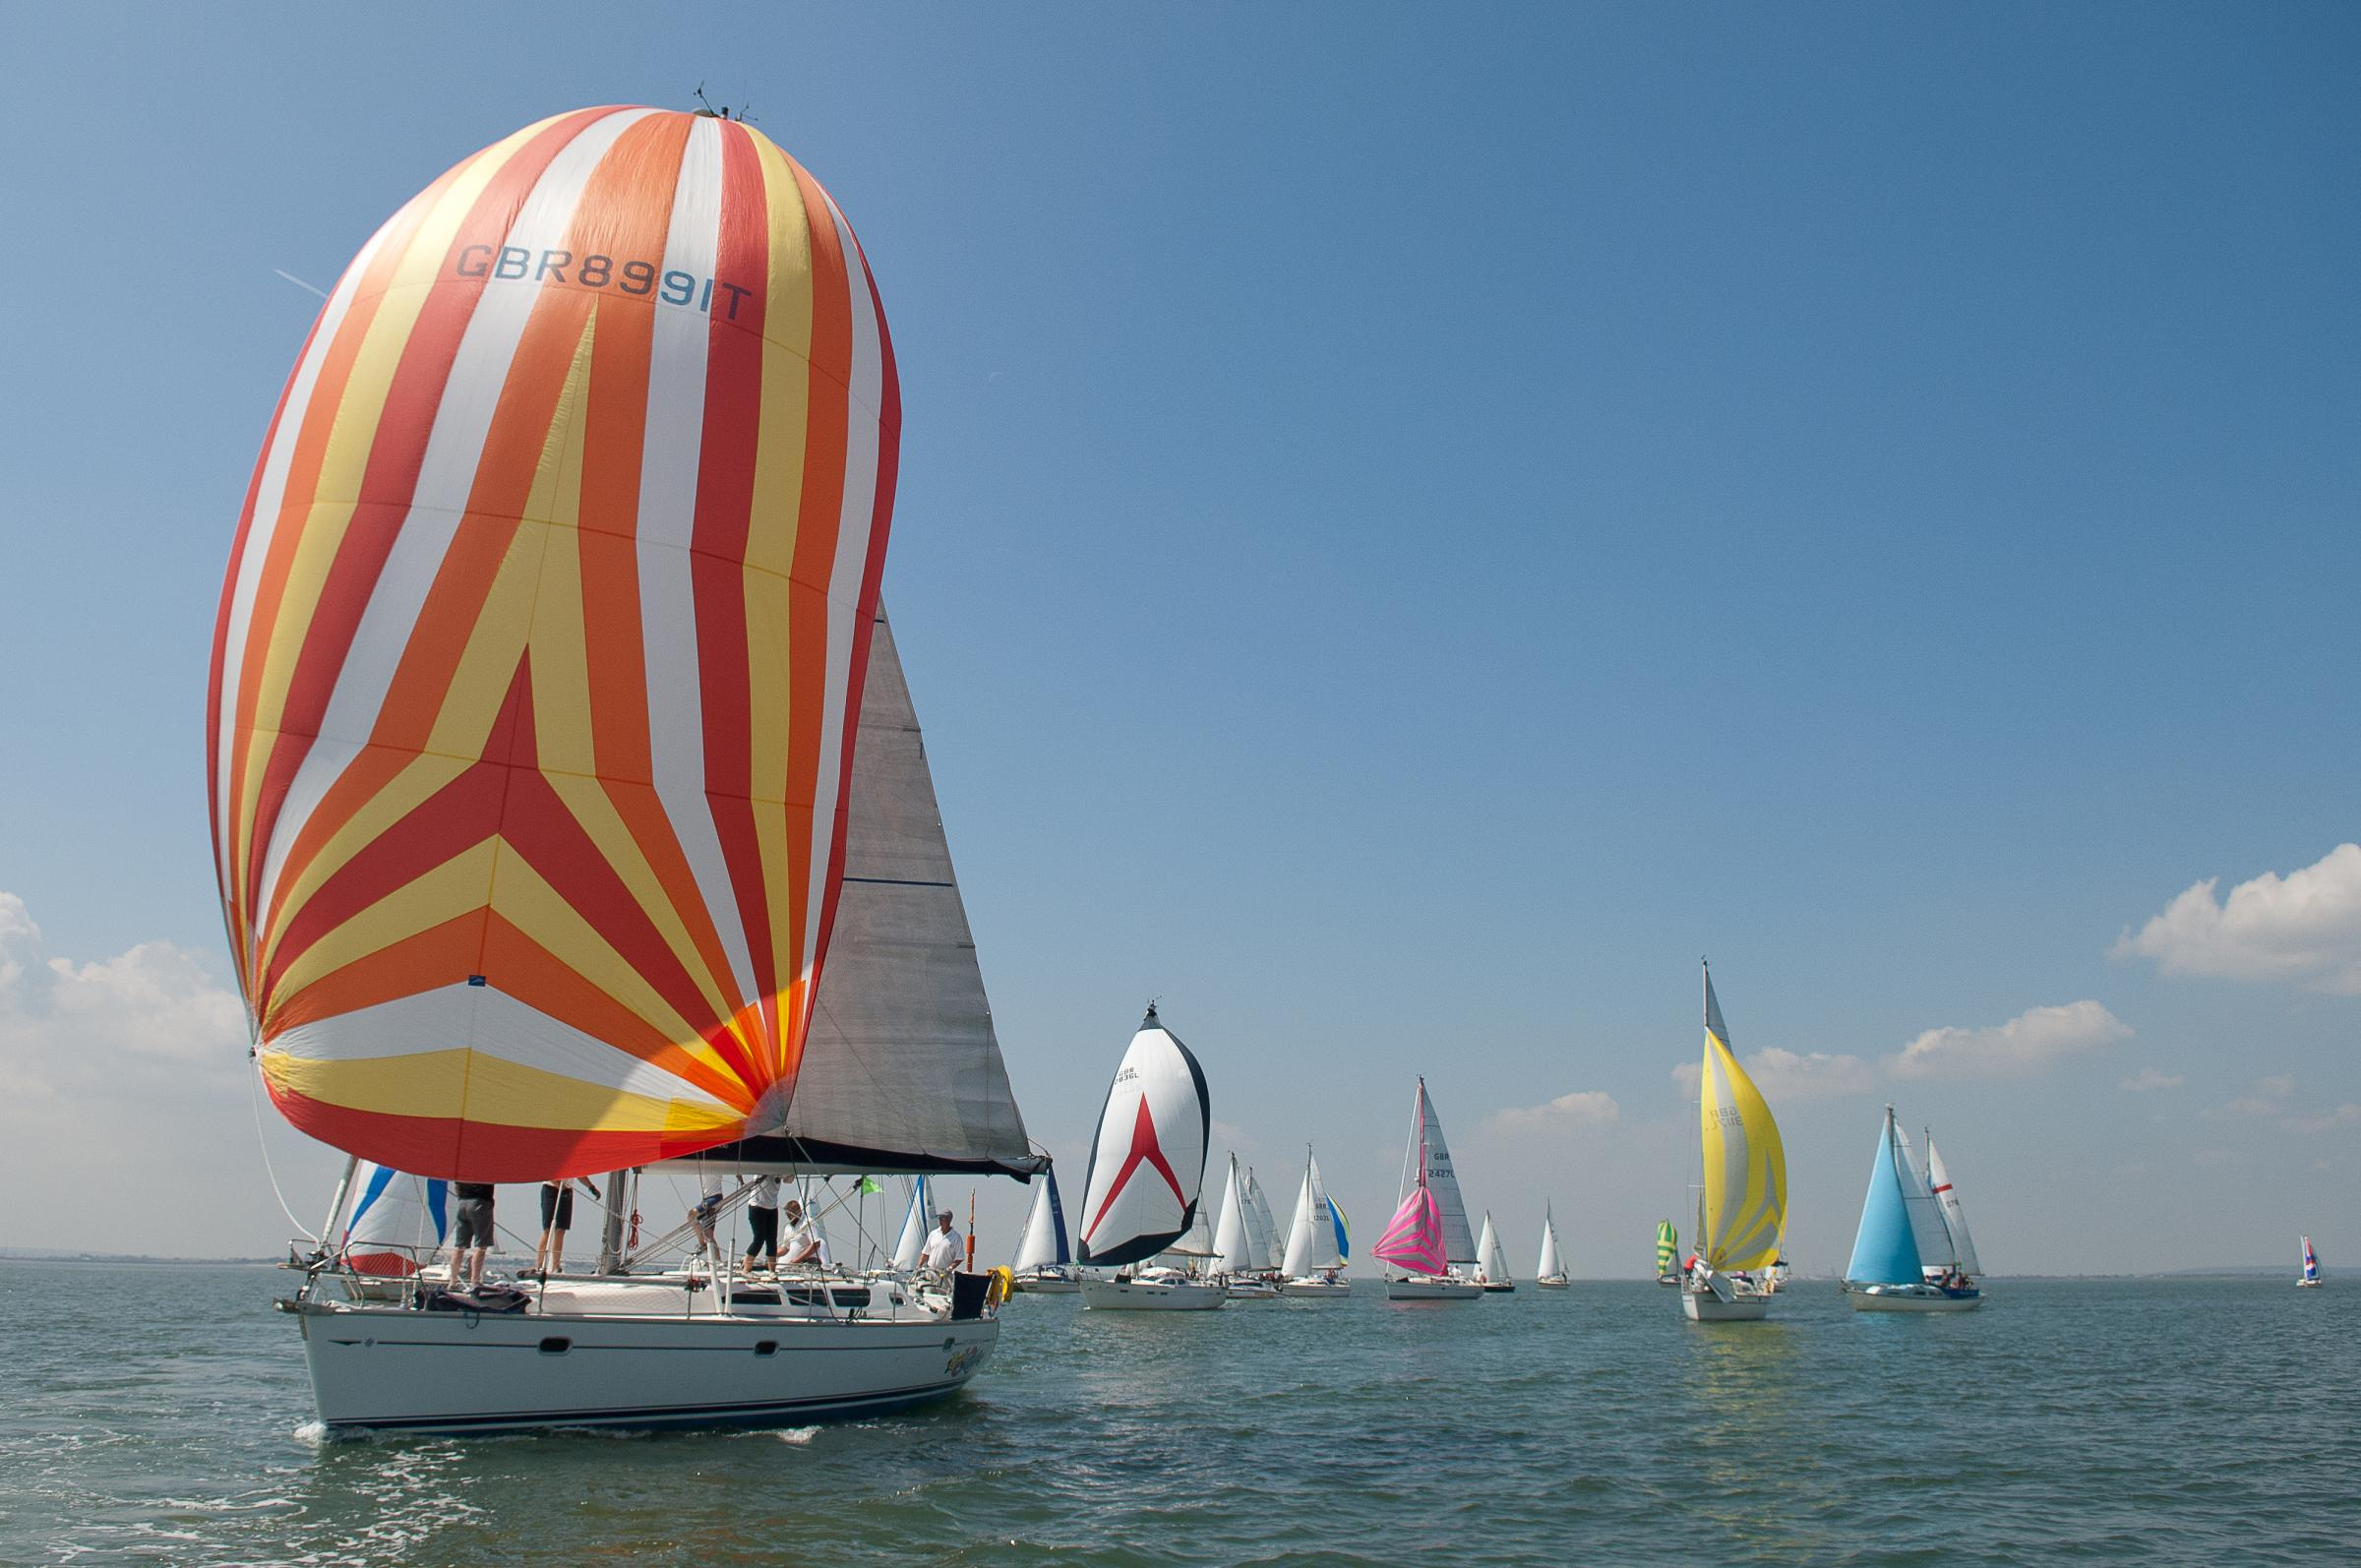 Sailing spectacular - 84 boats compete in traditional Southend sailing race